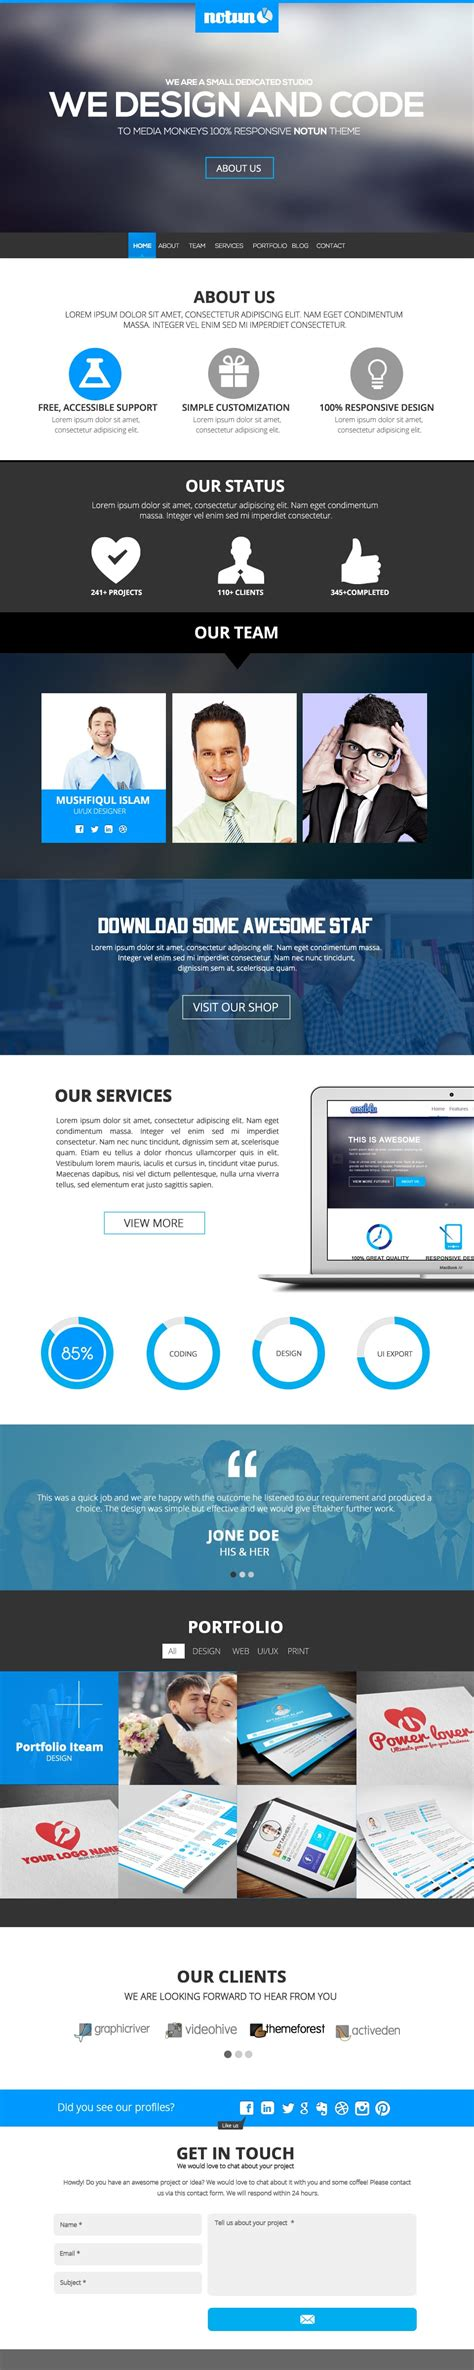 freebie halcyon days one page website template template